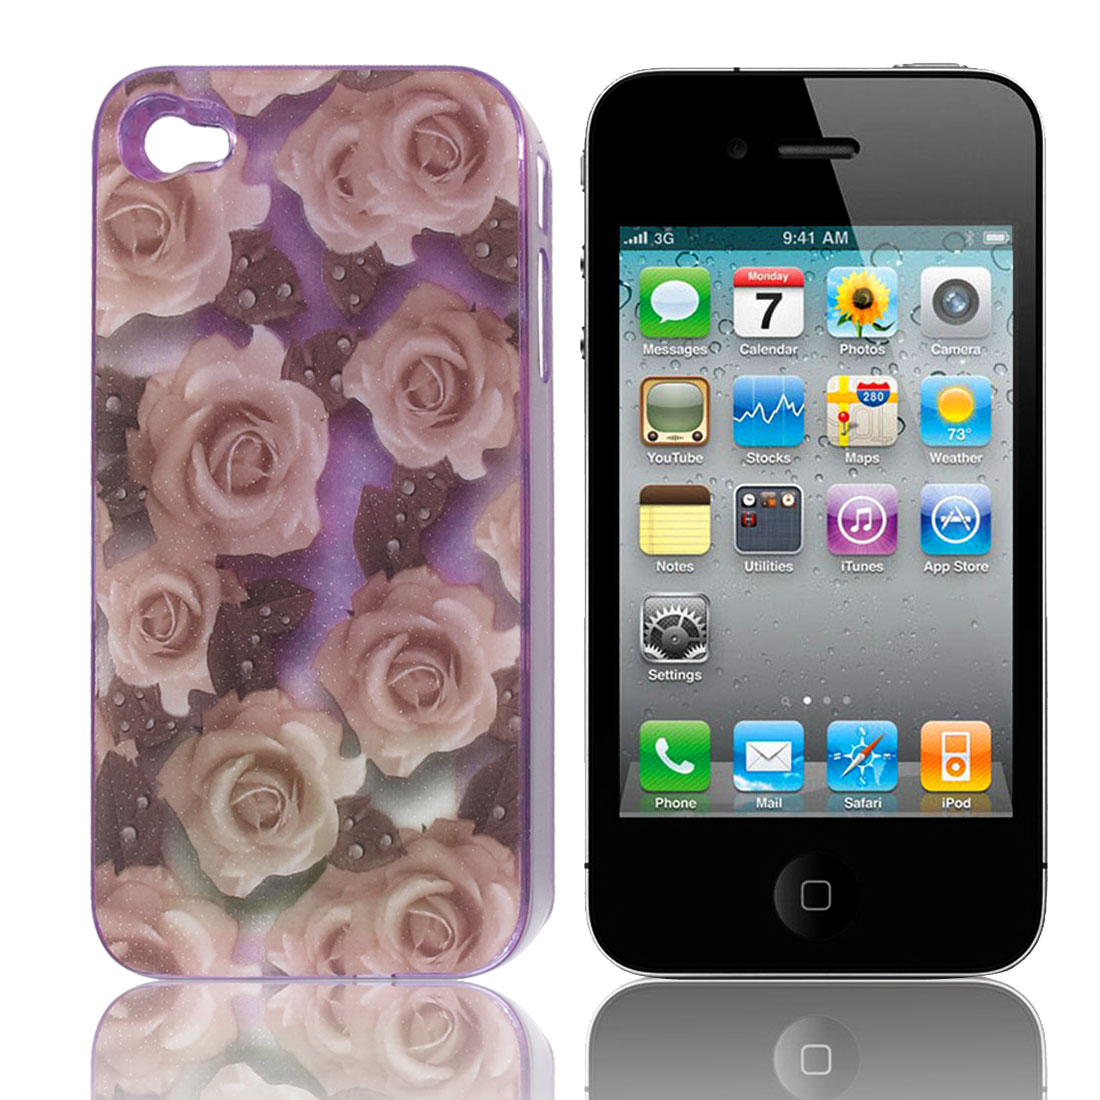 Rose Flower Sense Flash Light LED Color Changed Back Case Cover for iPhone 4 4S